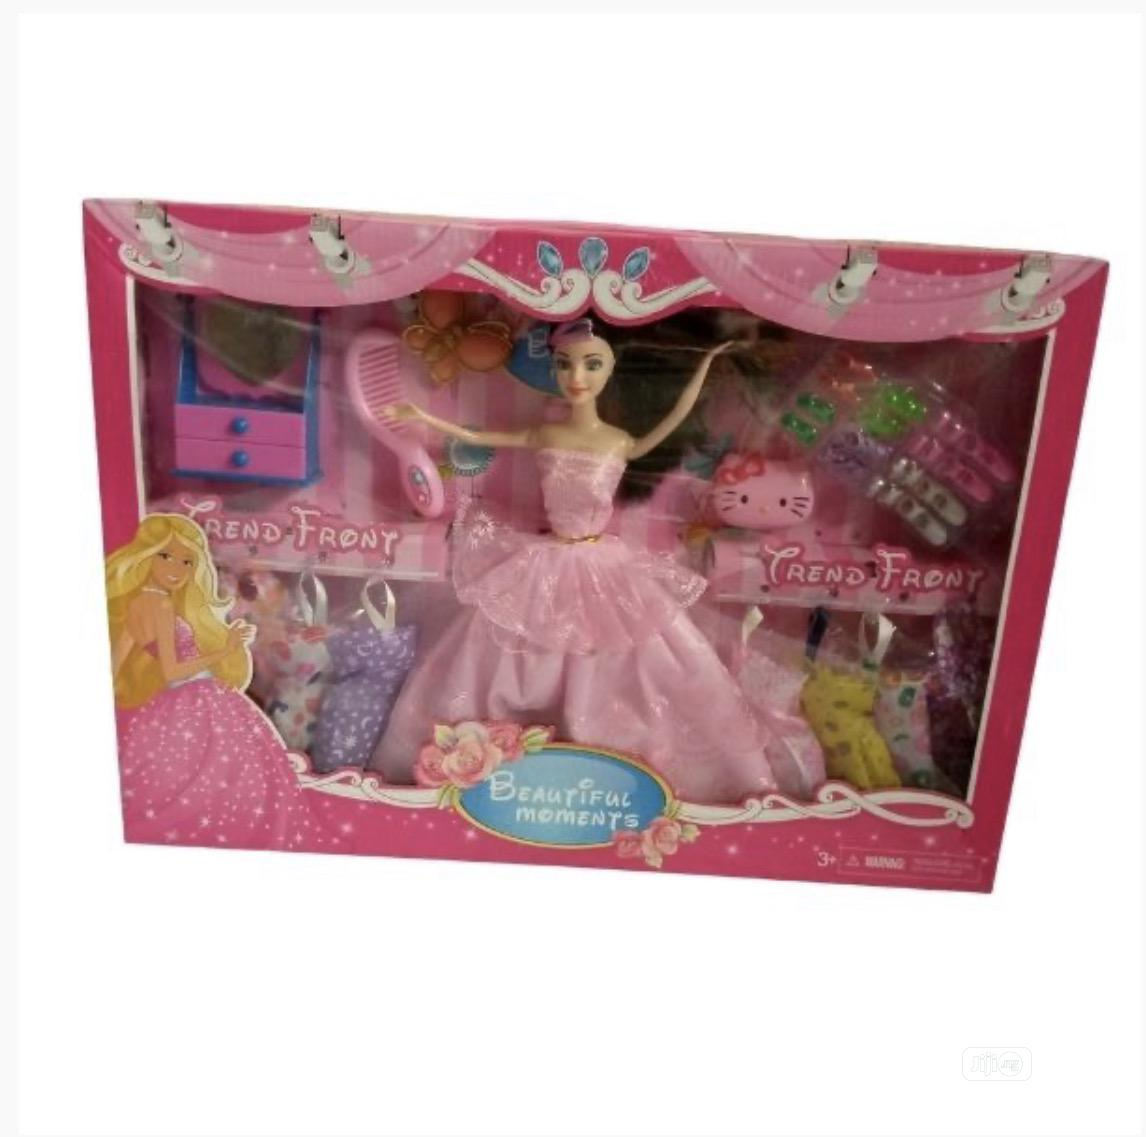 Princess Dress-Up Playset